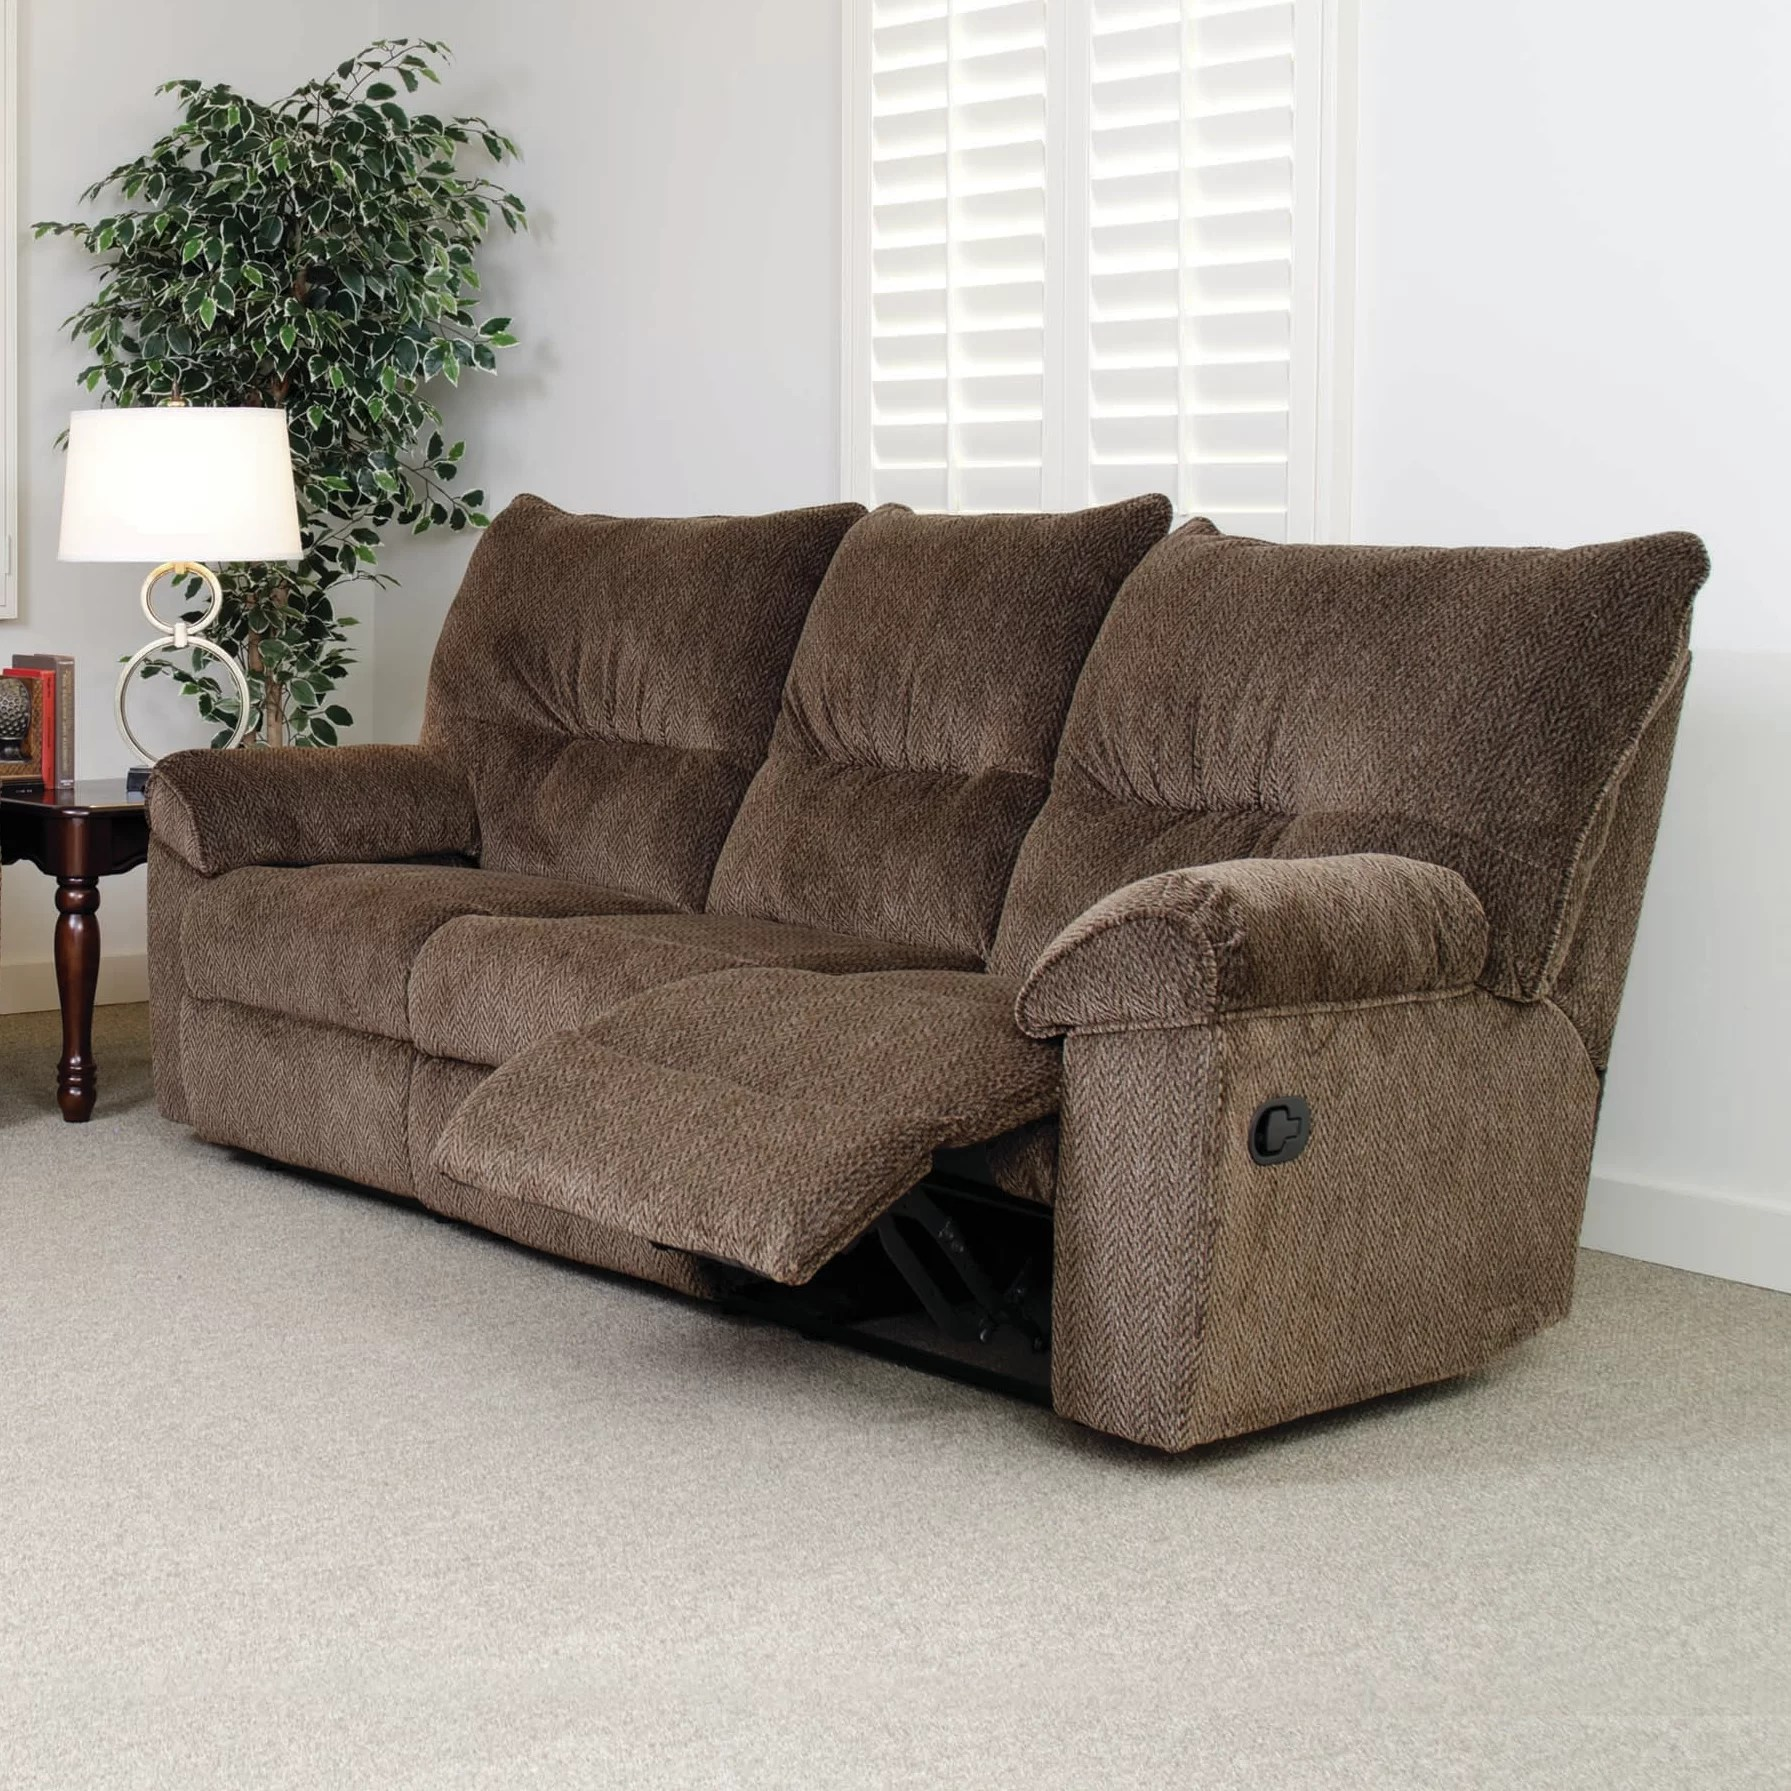 Serta Upholstery Double Reclining Sofa  Reviews  Wayfair